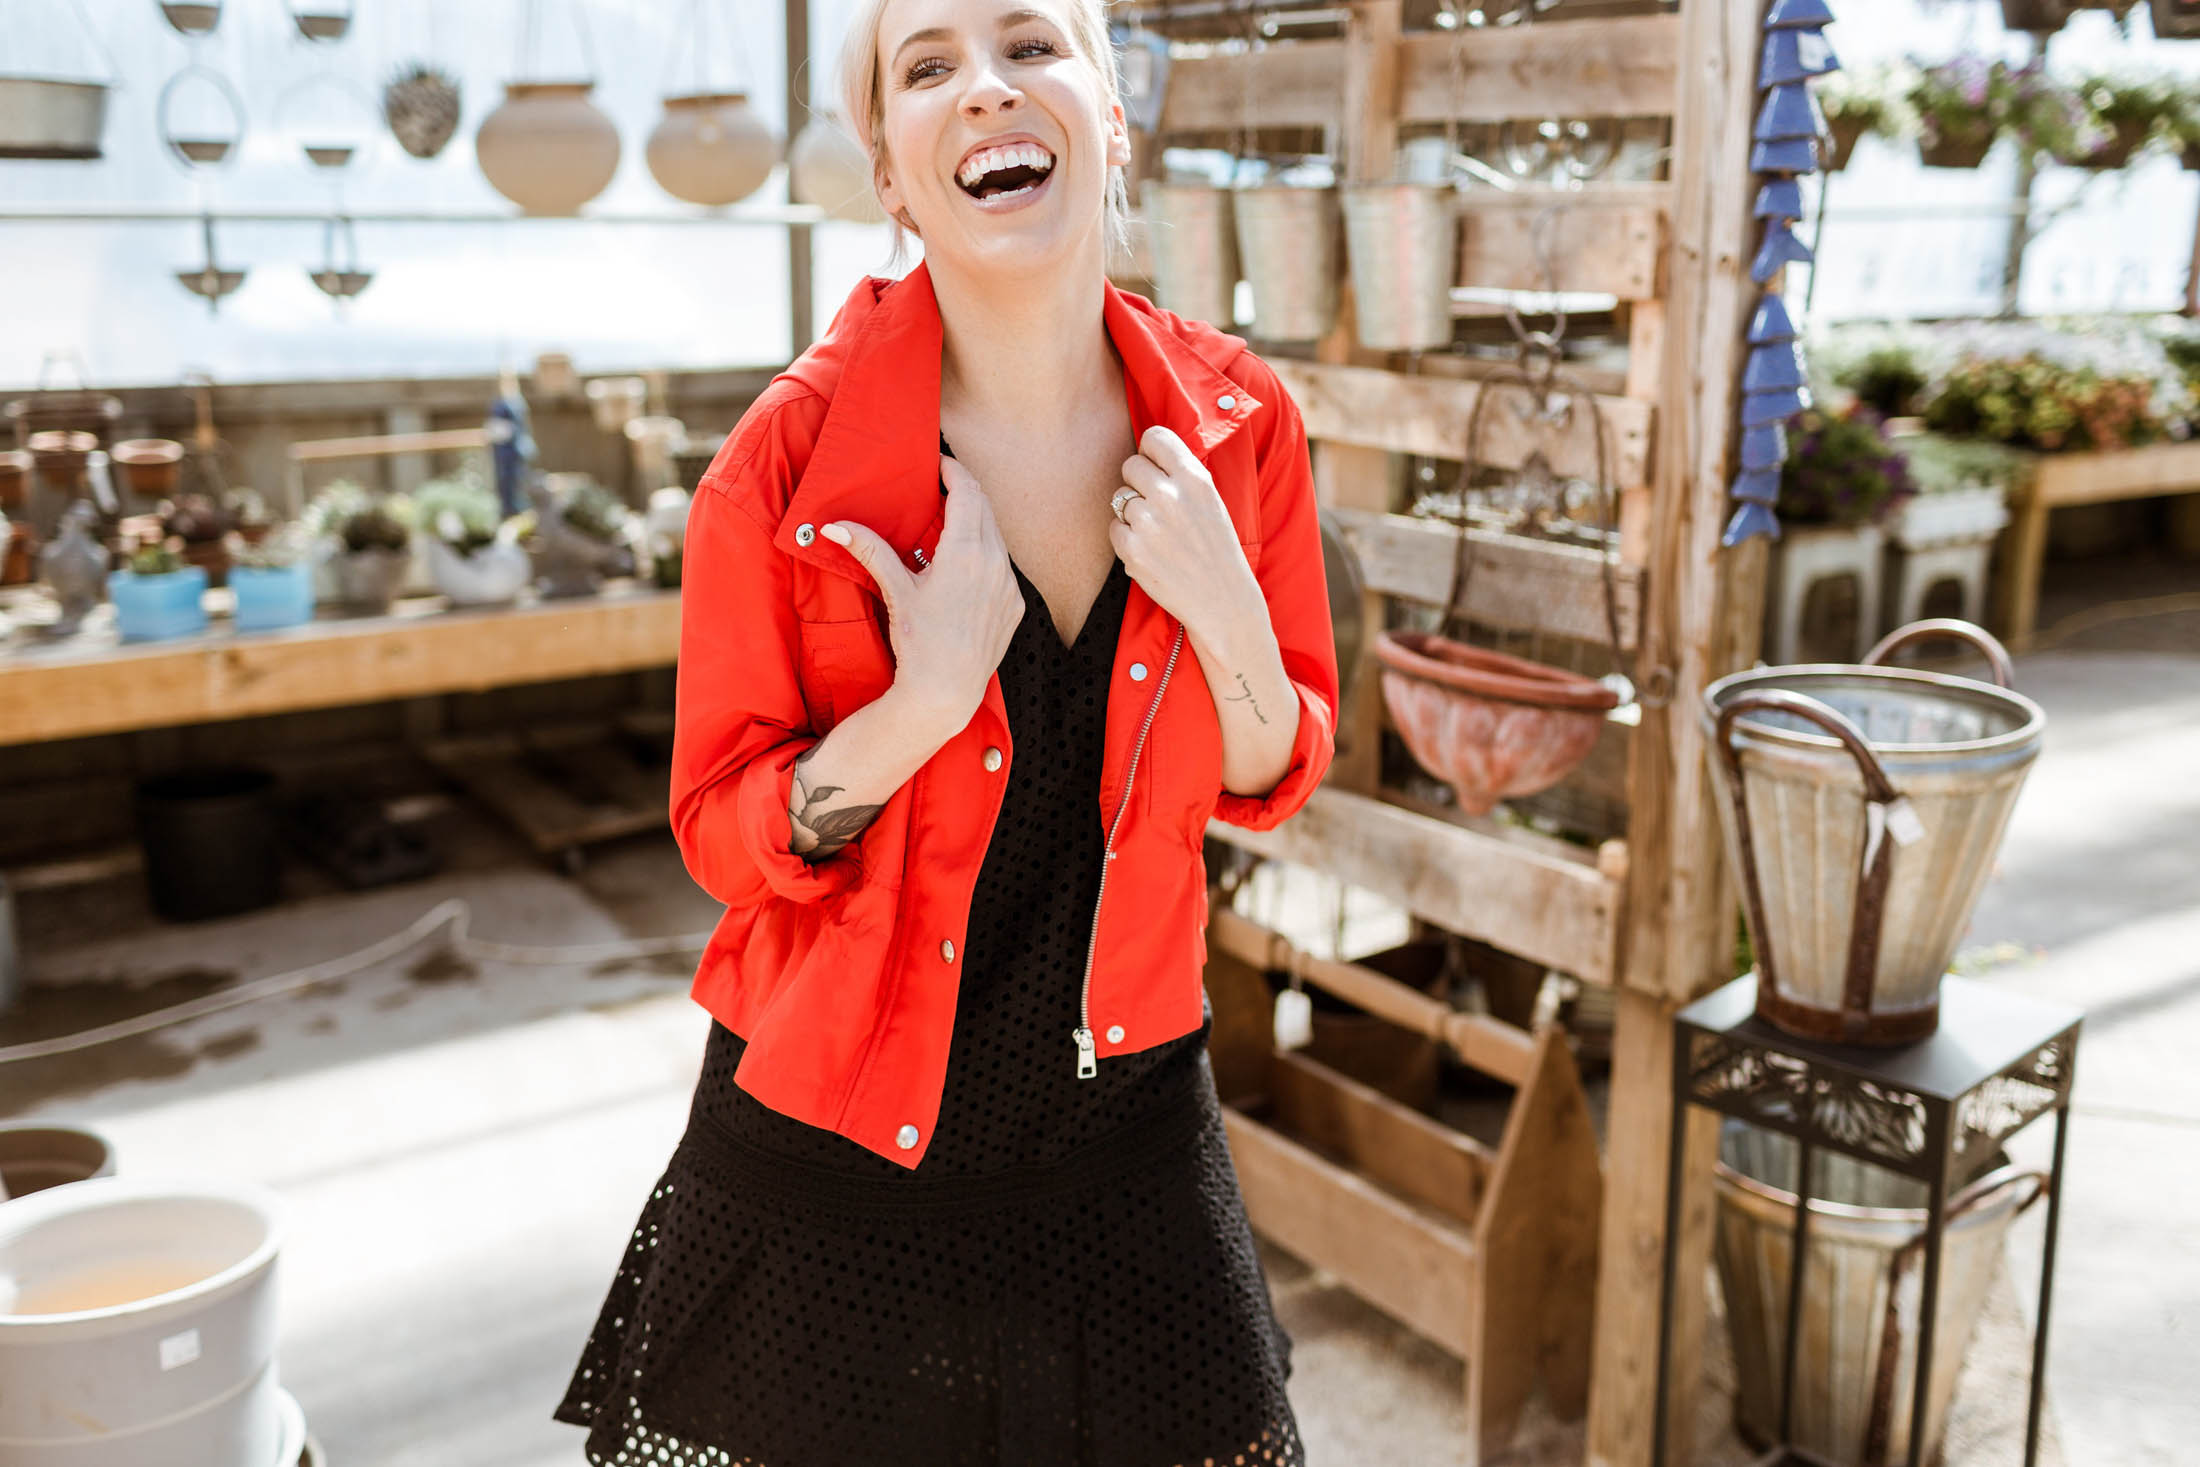 Pretty dresses + spring & summer jackets = an easy outfit formula for day-to-night dressing. We're all over this eyelet dress & cotton-linen blazer. WIN.